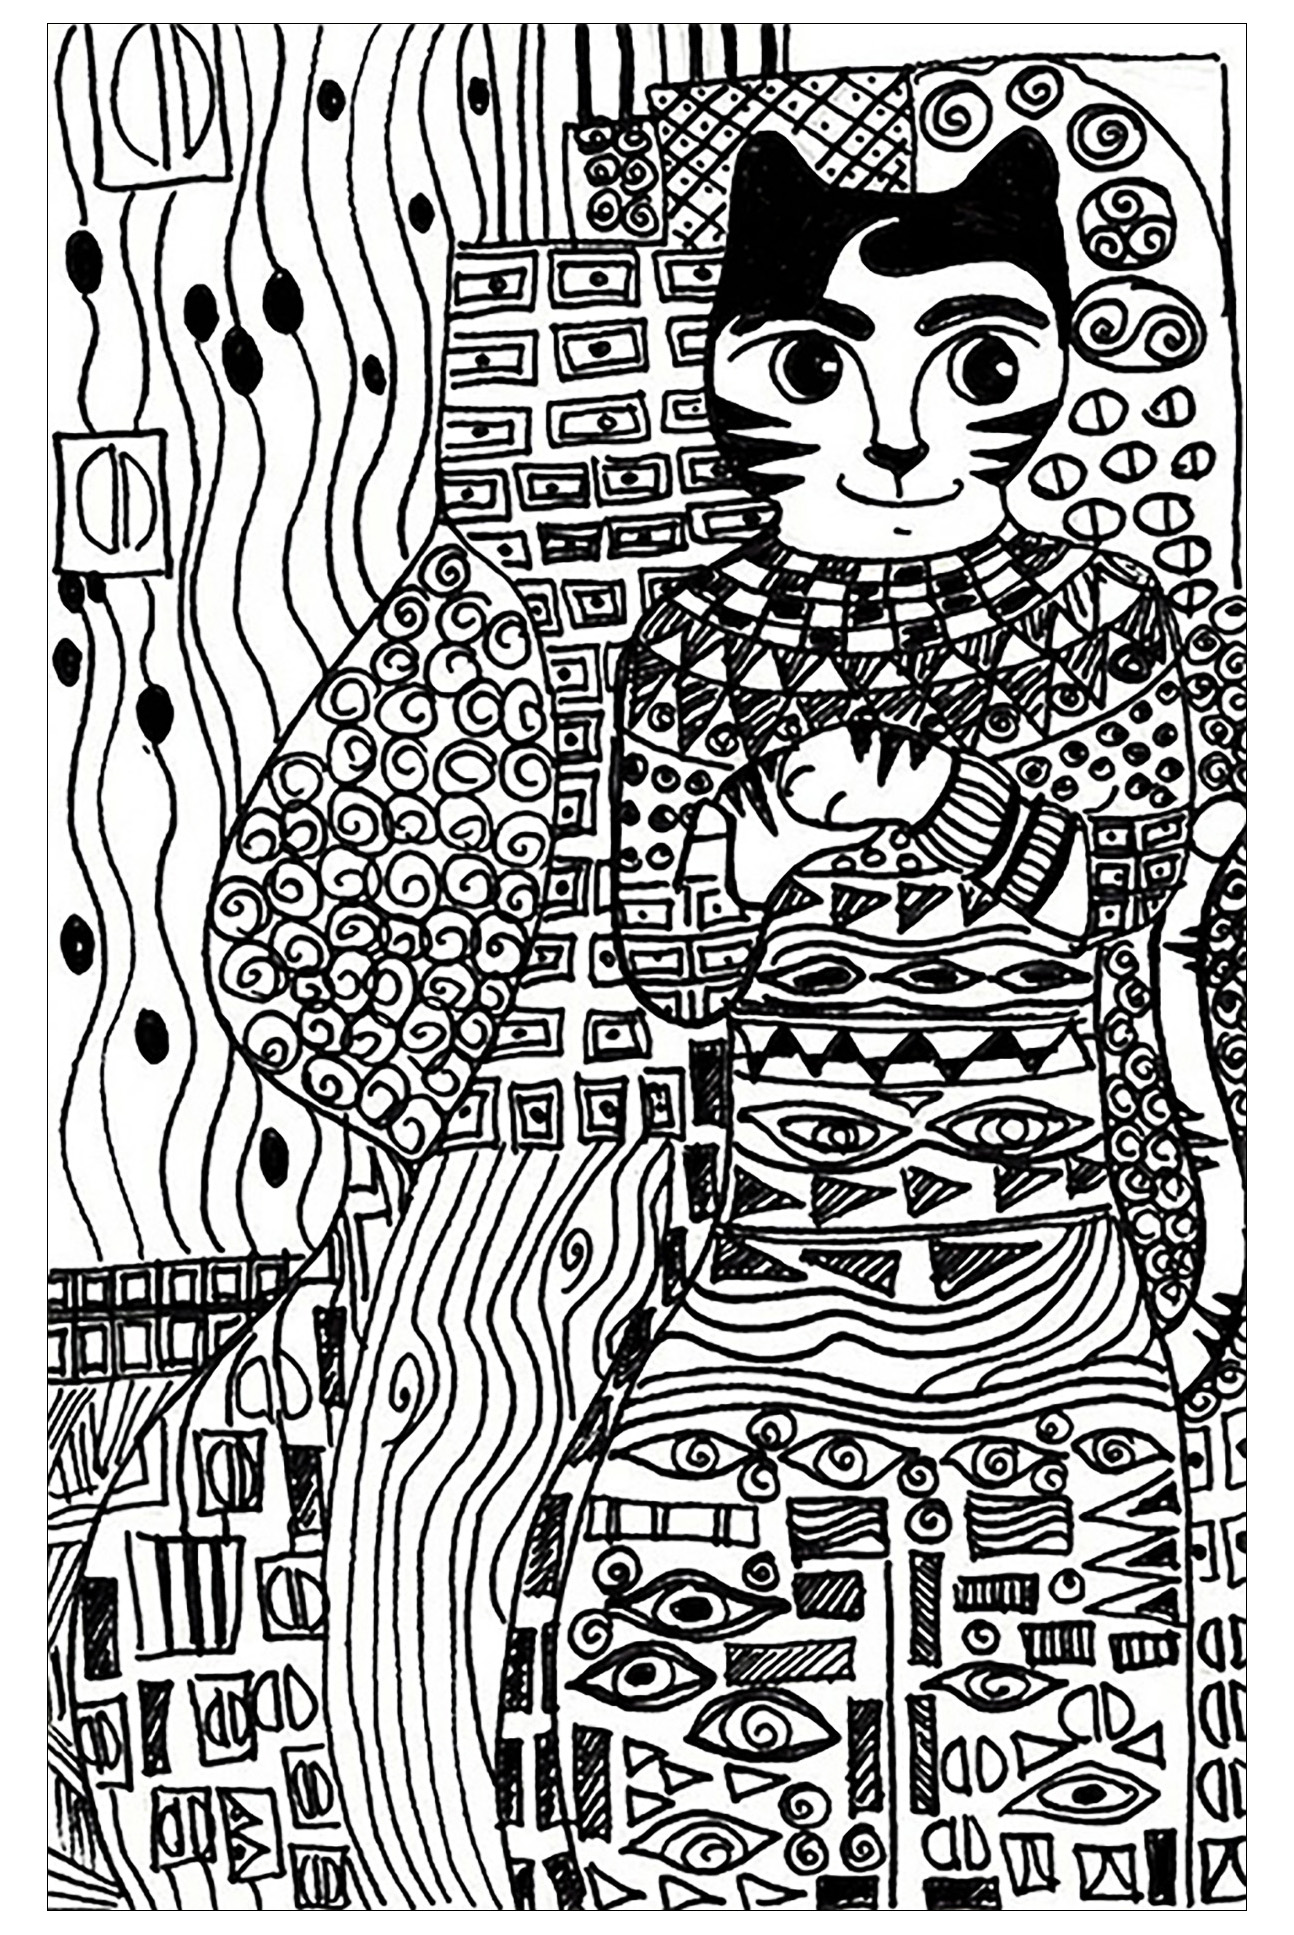 Klimt Coloring Page To Print And Color For Free